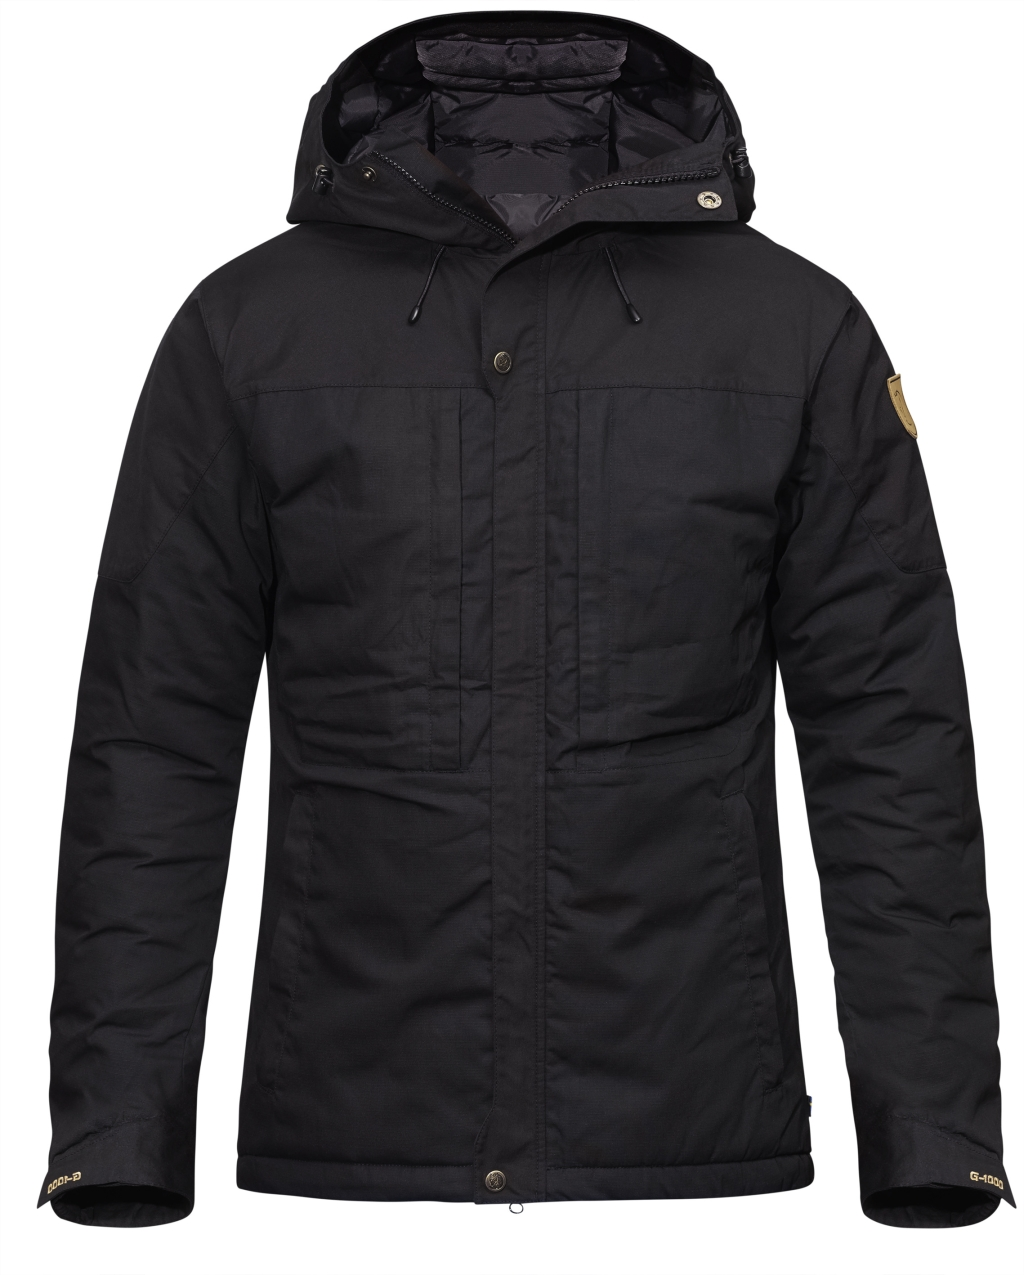 FjallRaven Skogso Padded Jacket Black-30